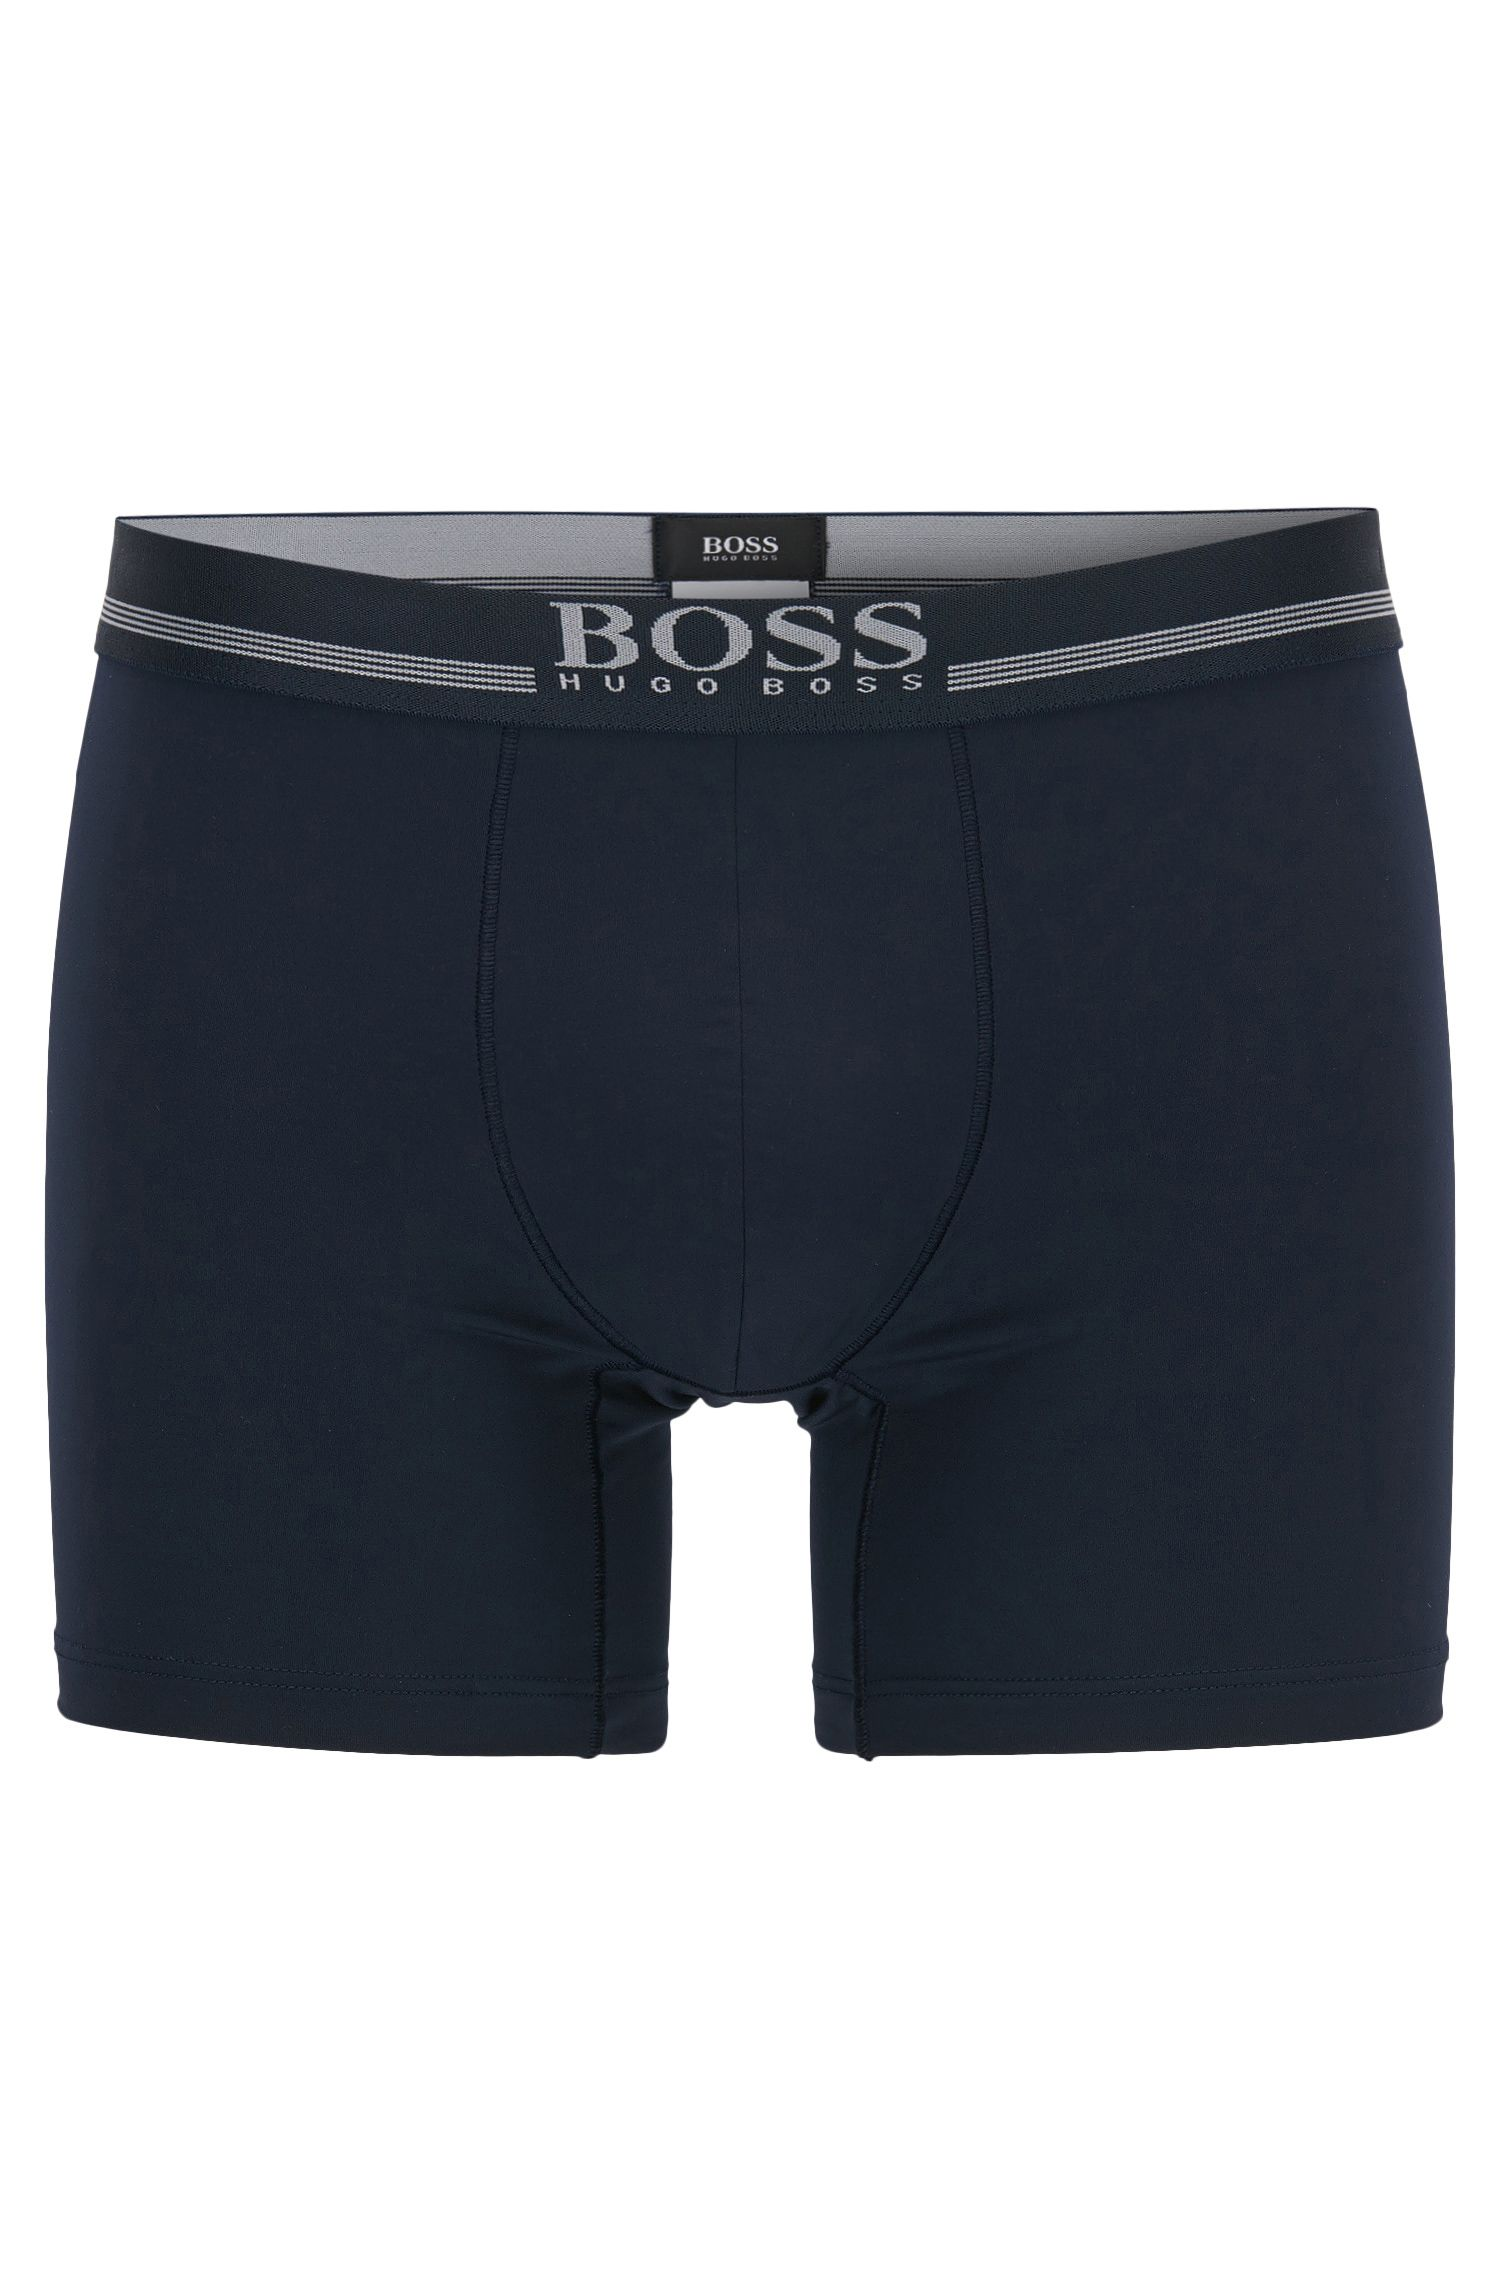 Boxer briefs in four-way-stretch microfibre